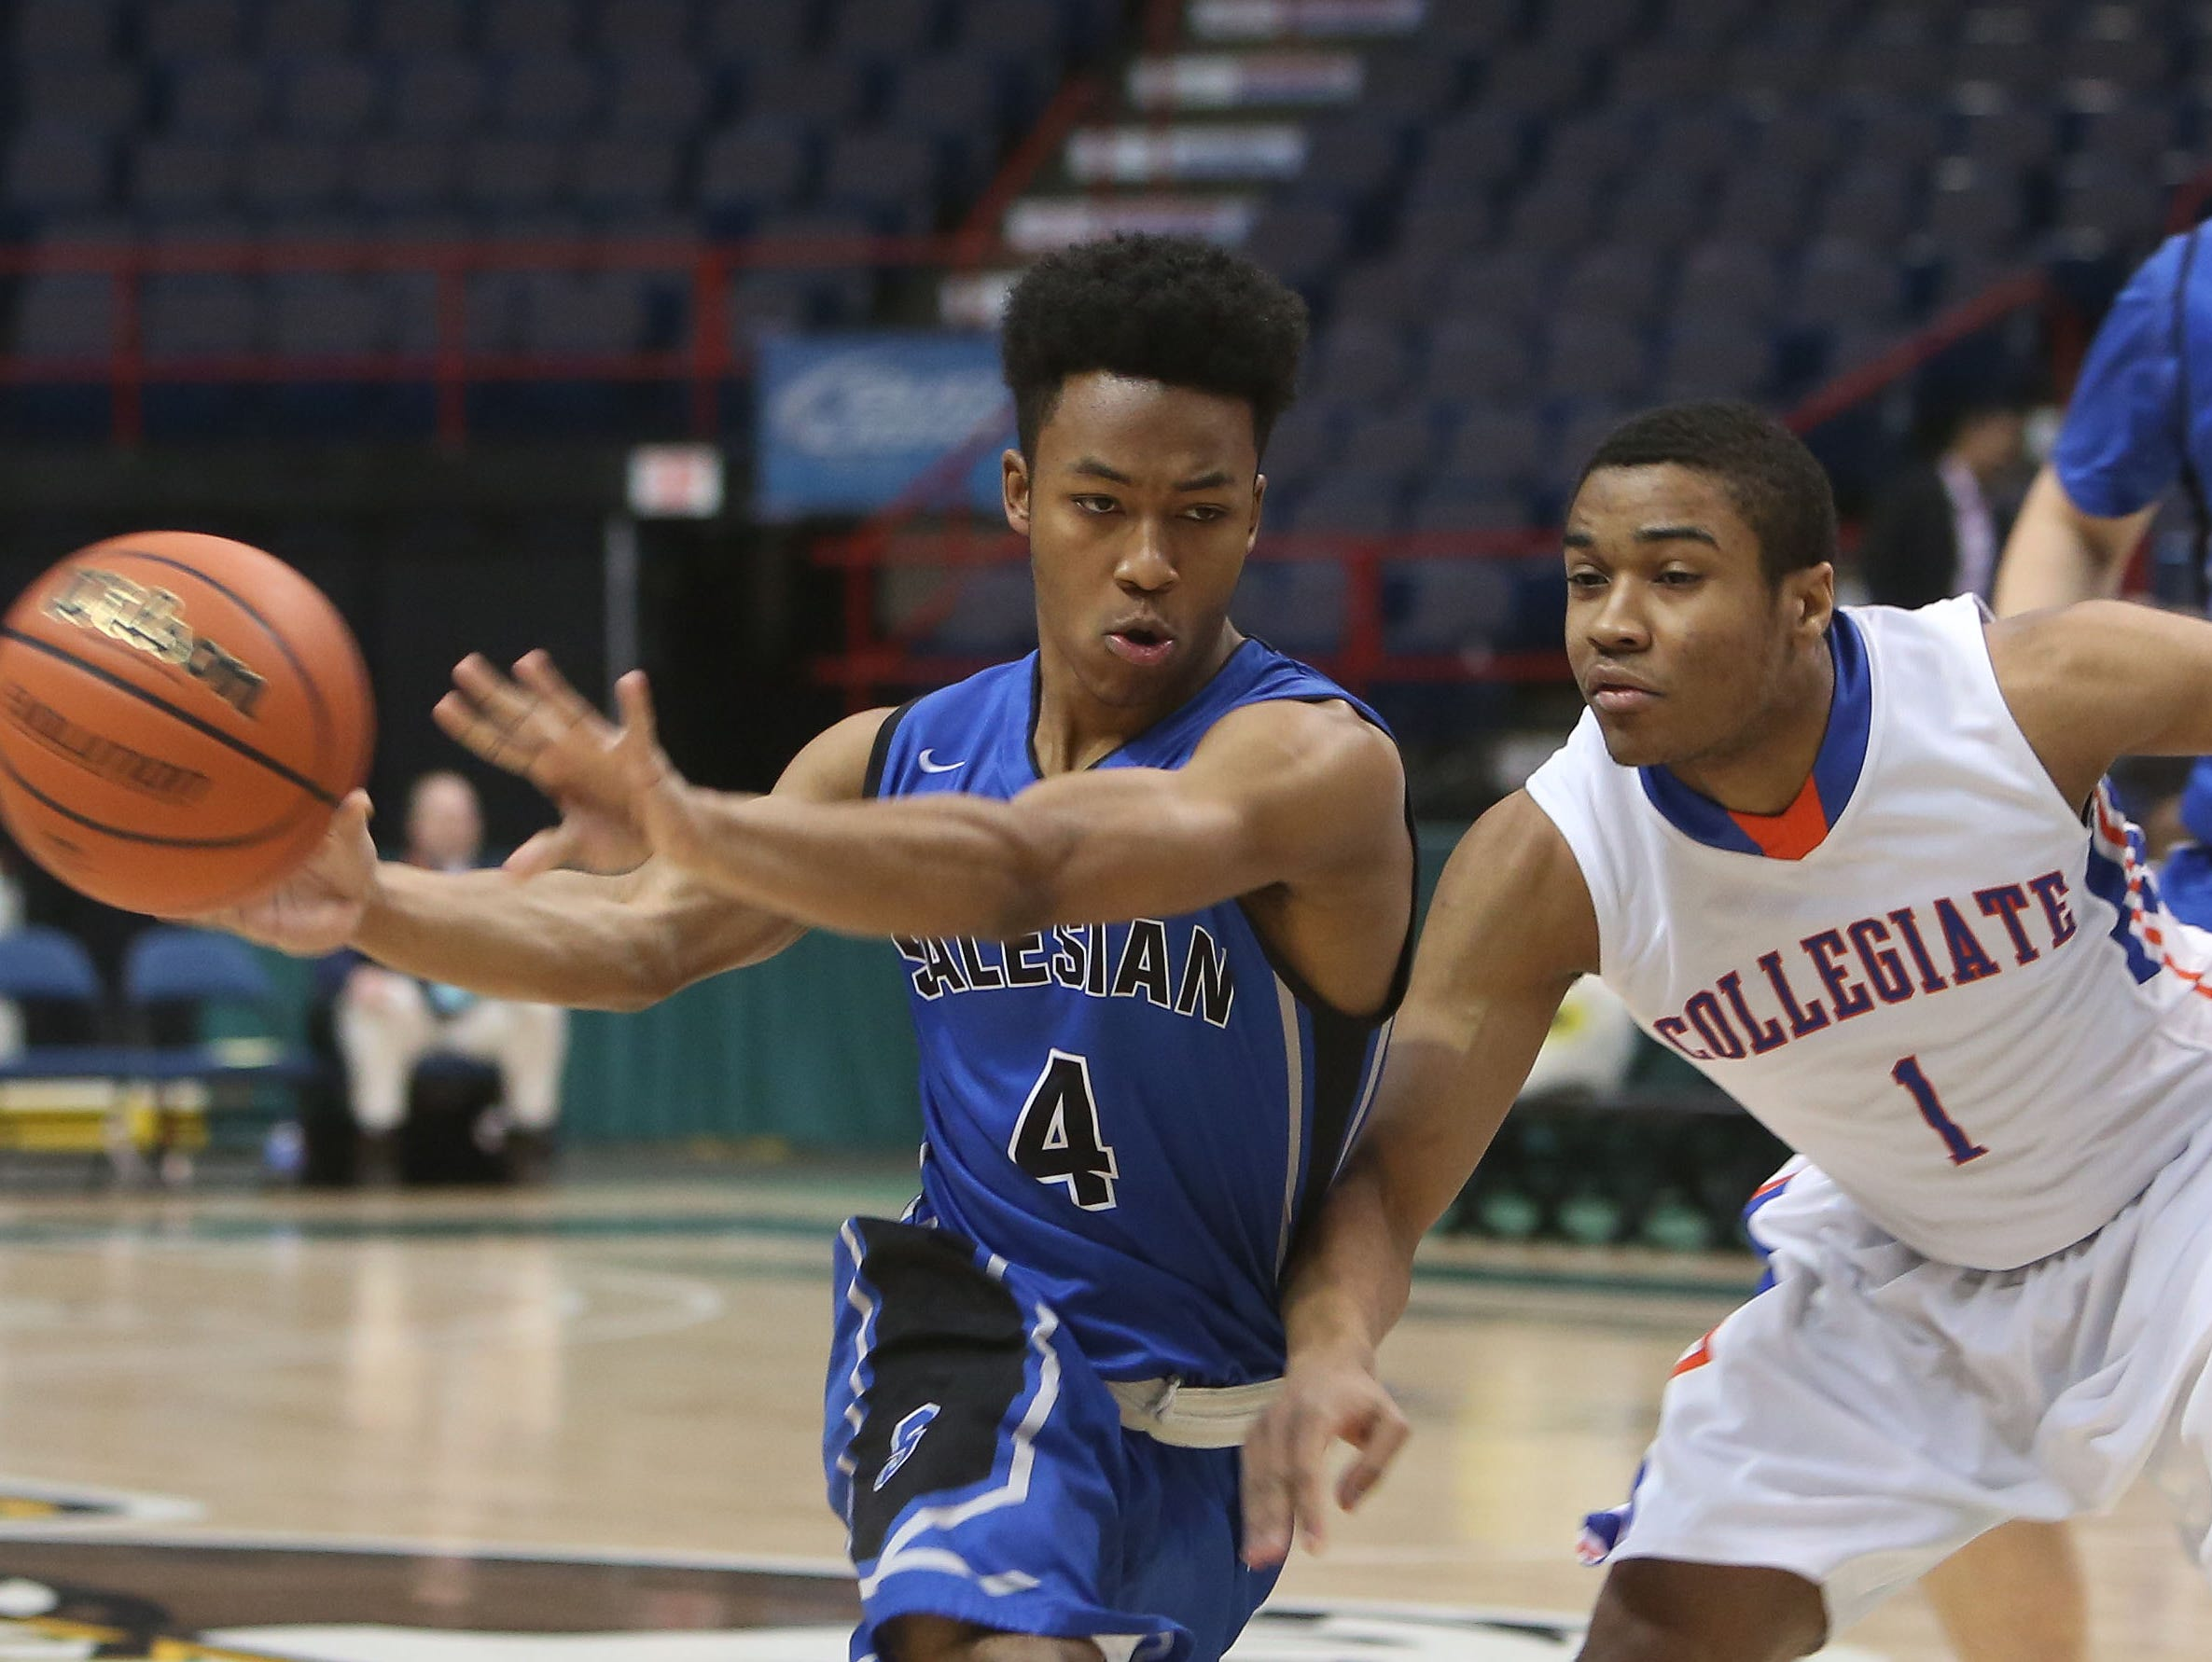 Collegiate defeated Salesian 63-45 in the Class B semifinal of the New York State Federation Tournament of Champions at the Times Union Center in Albany March 18, 2016.